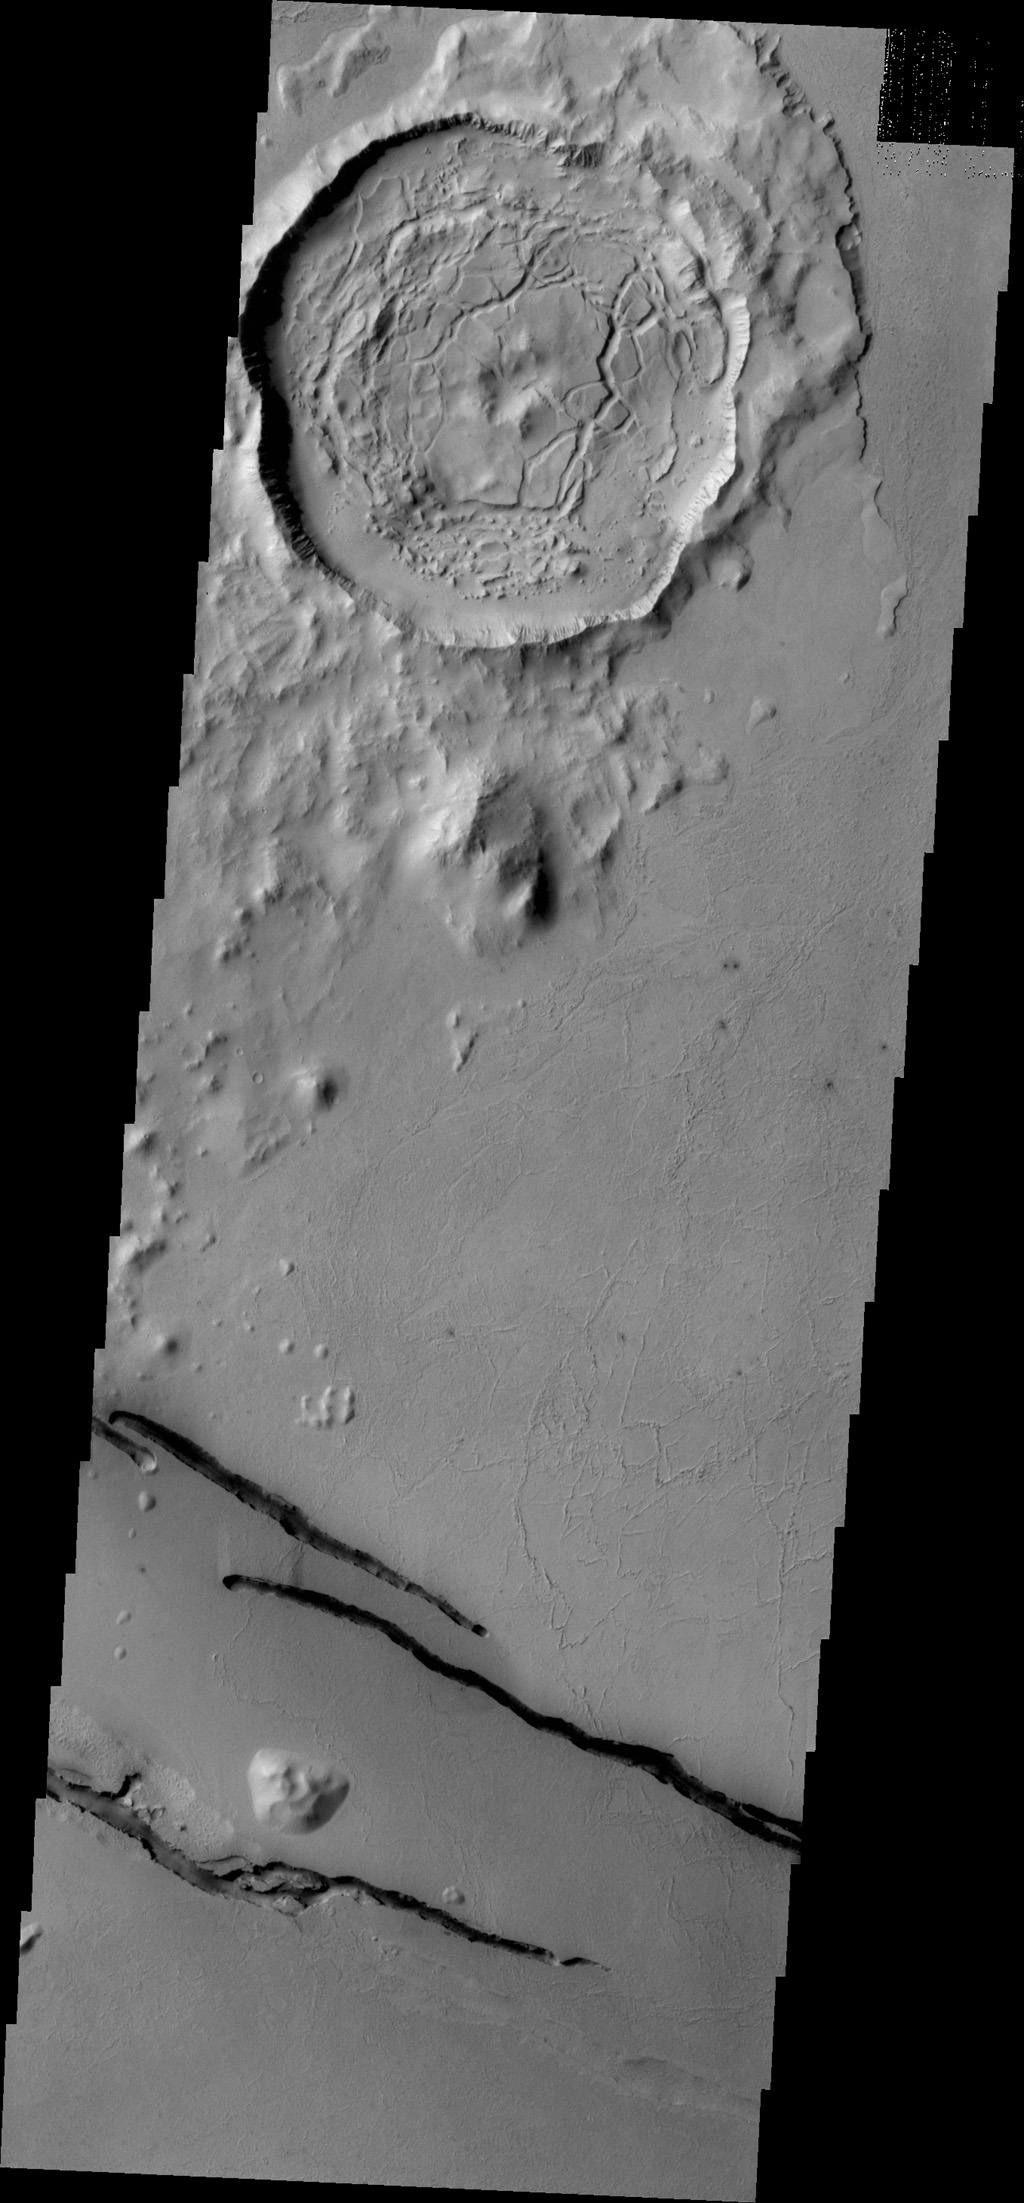 The dark fractures in this image from NASA's 2001 Mars Odyssey spacecraft are part of Cerberus Fossae.